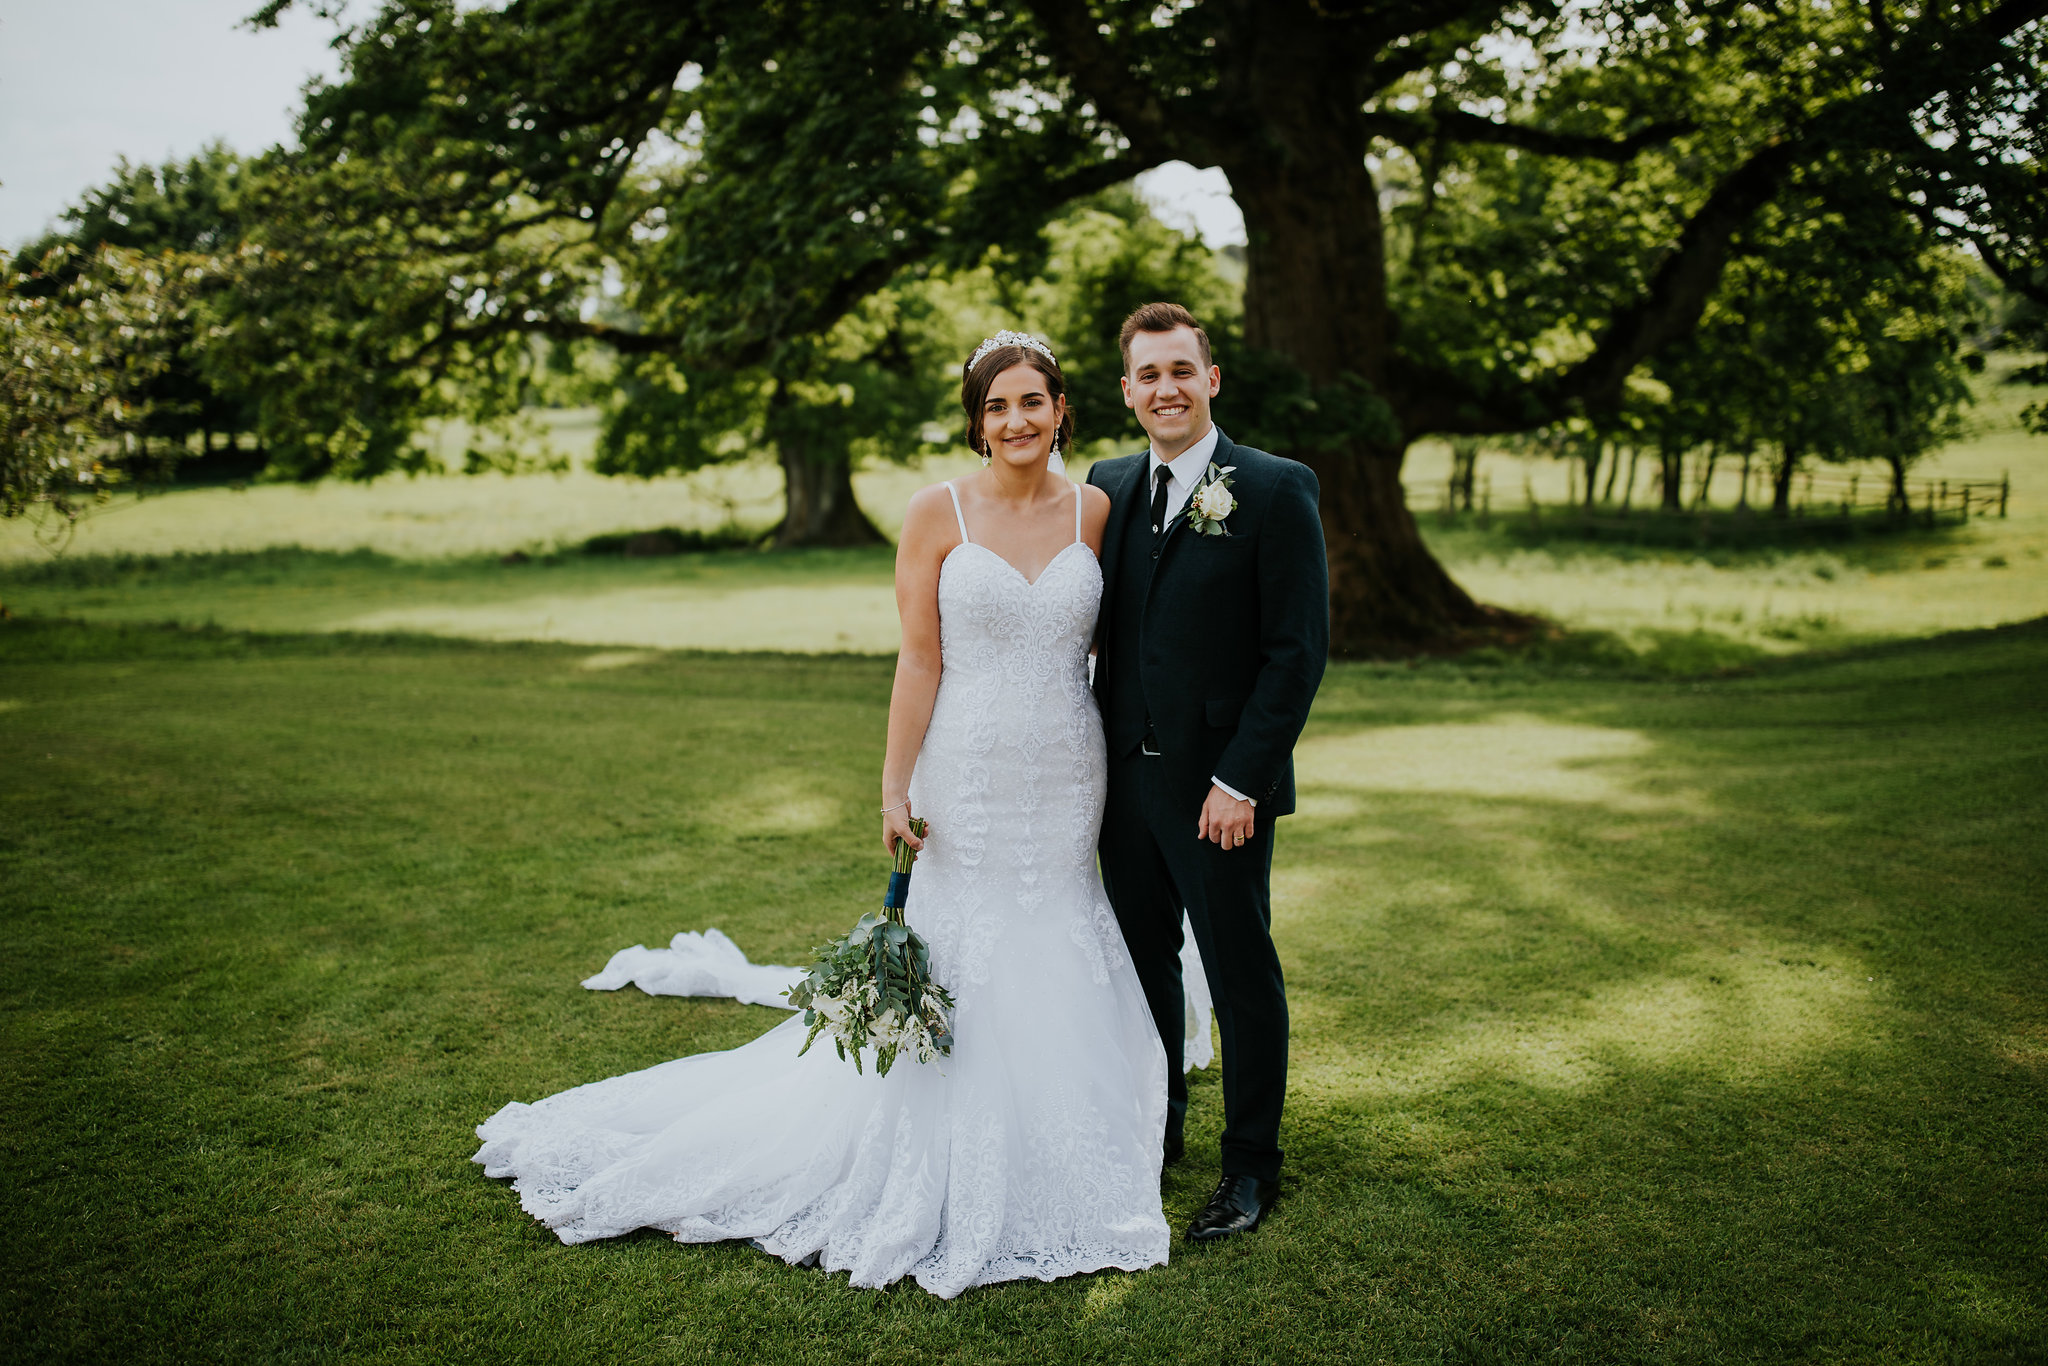 Duns_Castle_wedding_photographer_ross_alexander_photography (68).jpg